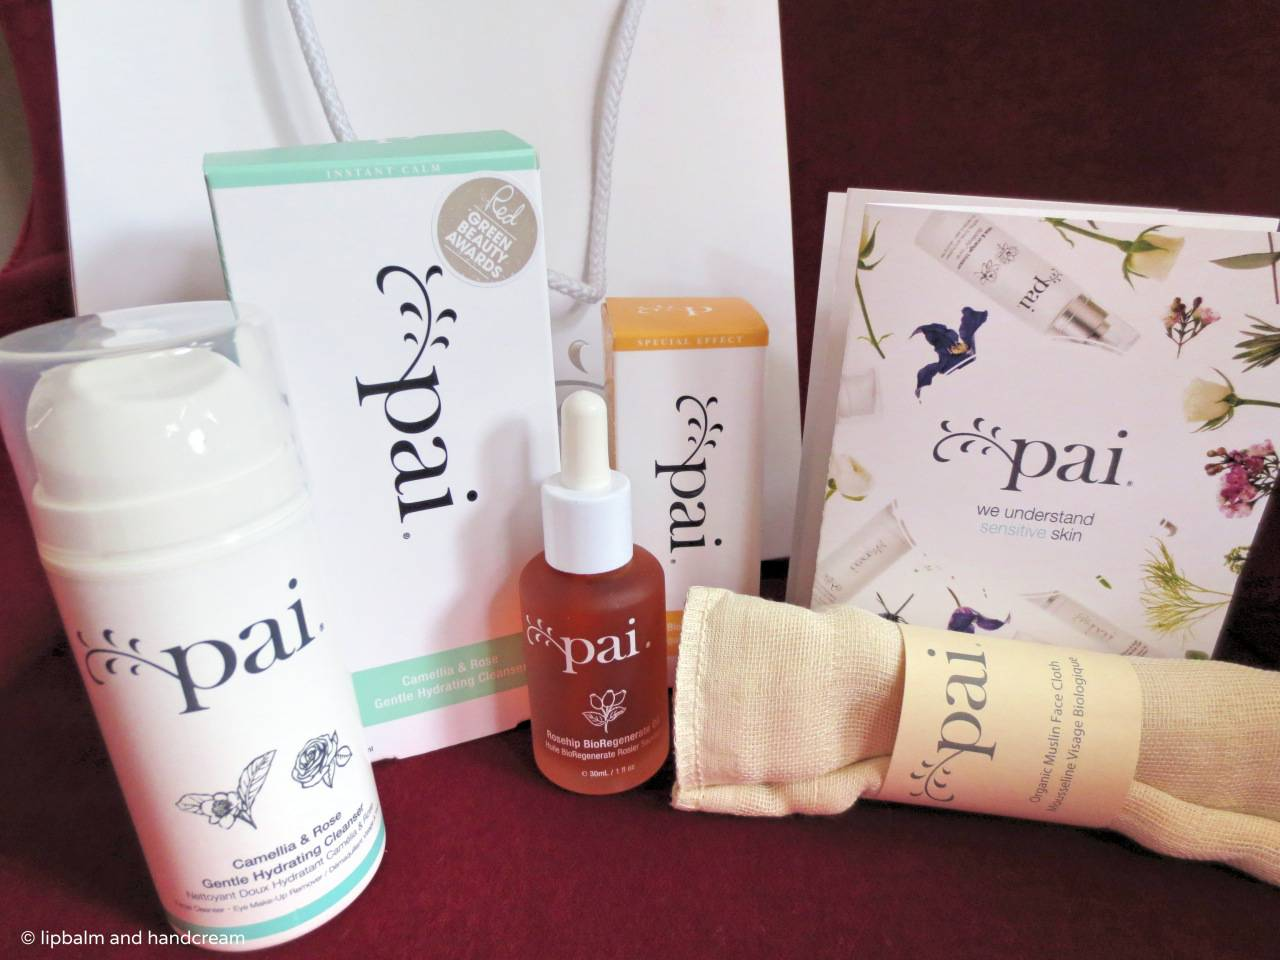 Pai haul from the talk with the founder, Sarah Brown